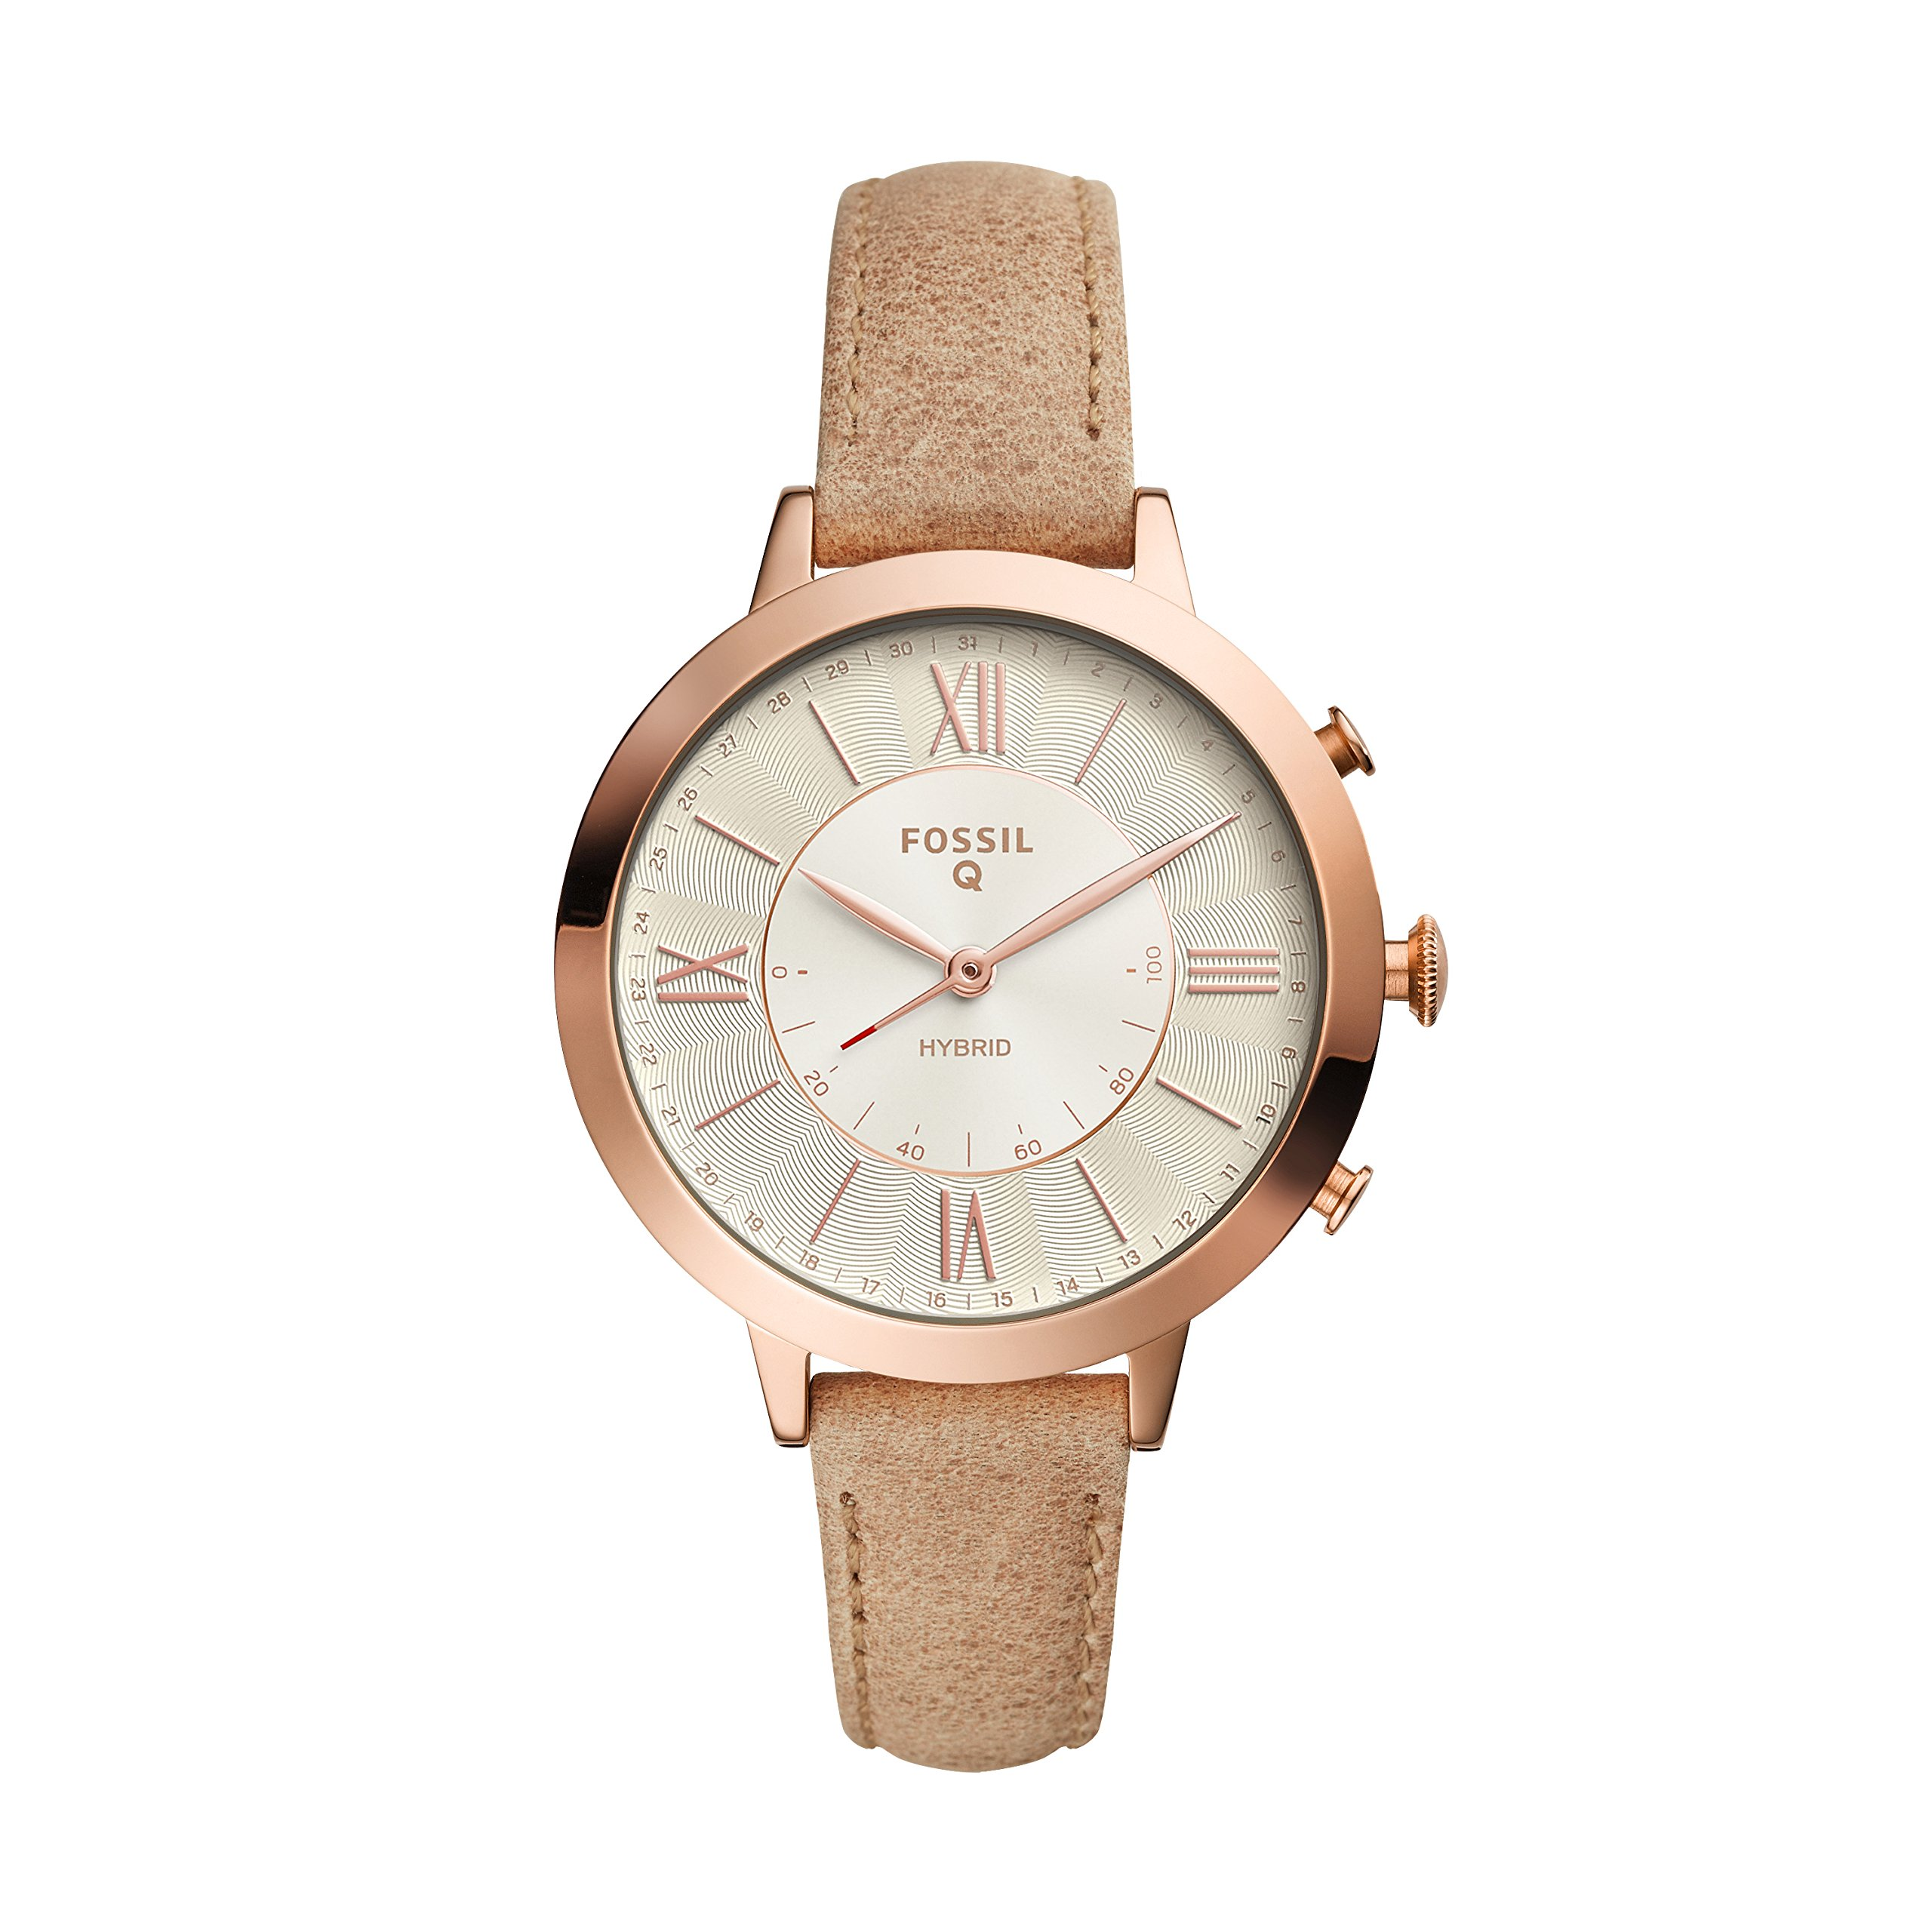 Fossil Q Women's Jacqueline Stainless Steel and Leather Hybrid Smartwatch, Color: Rose Gold-Tone, Beige (Model: FTW5013) by Fossil